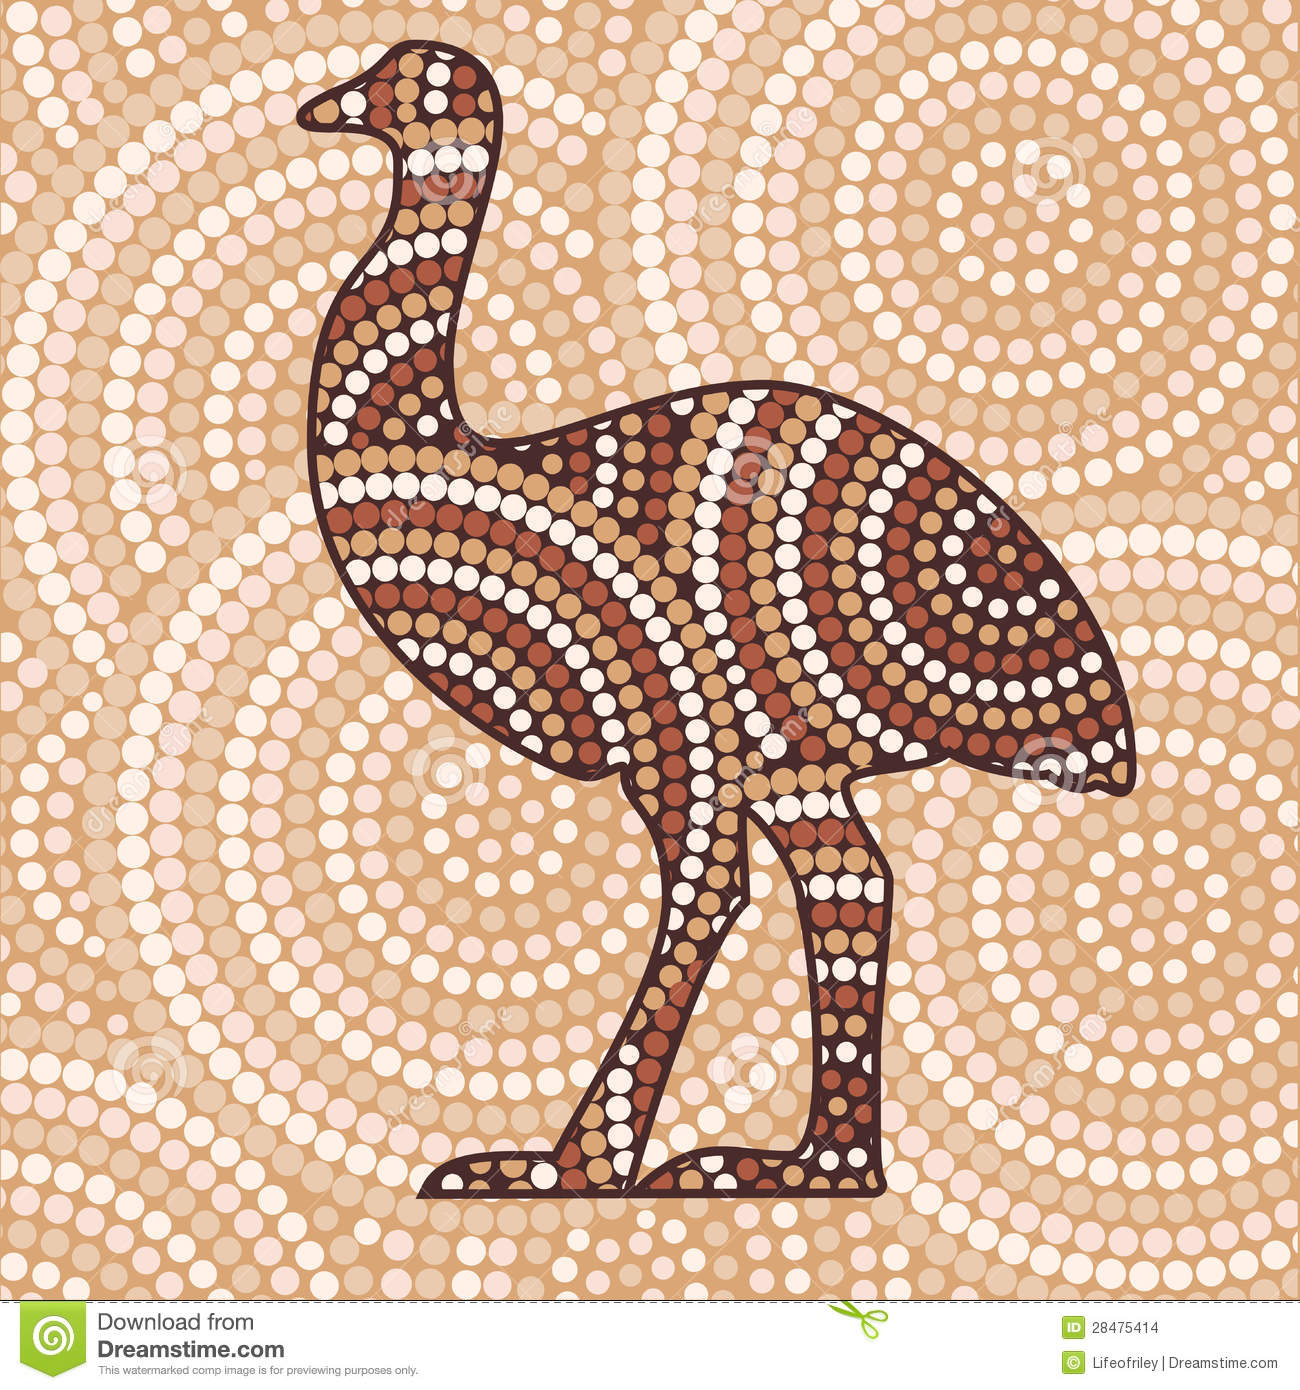 Indigenous Art clipart #14, Download drawings